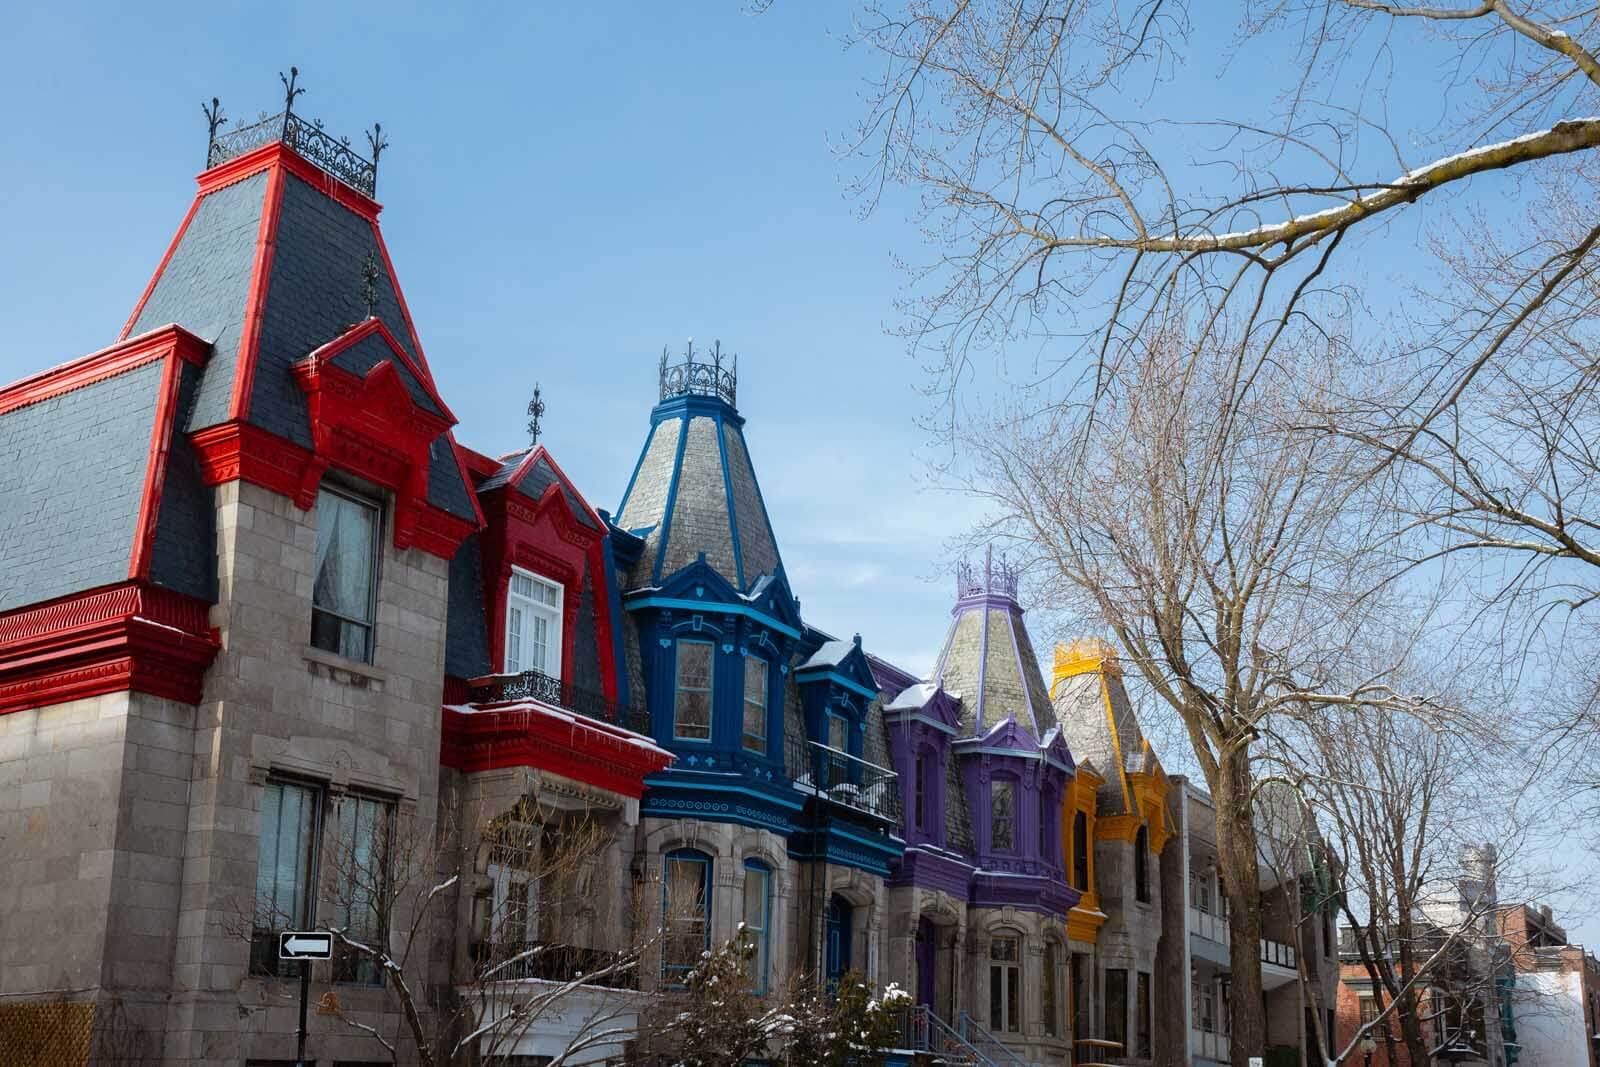 The colorful homes of Saint Louis Square in Montreal